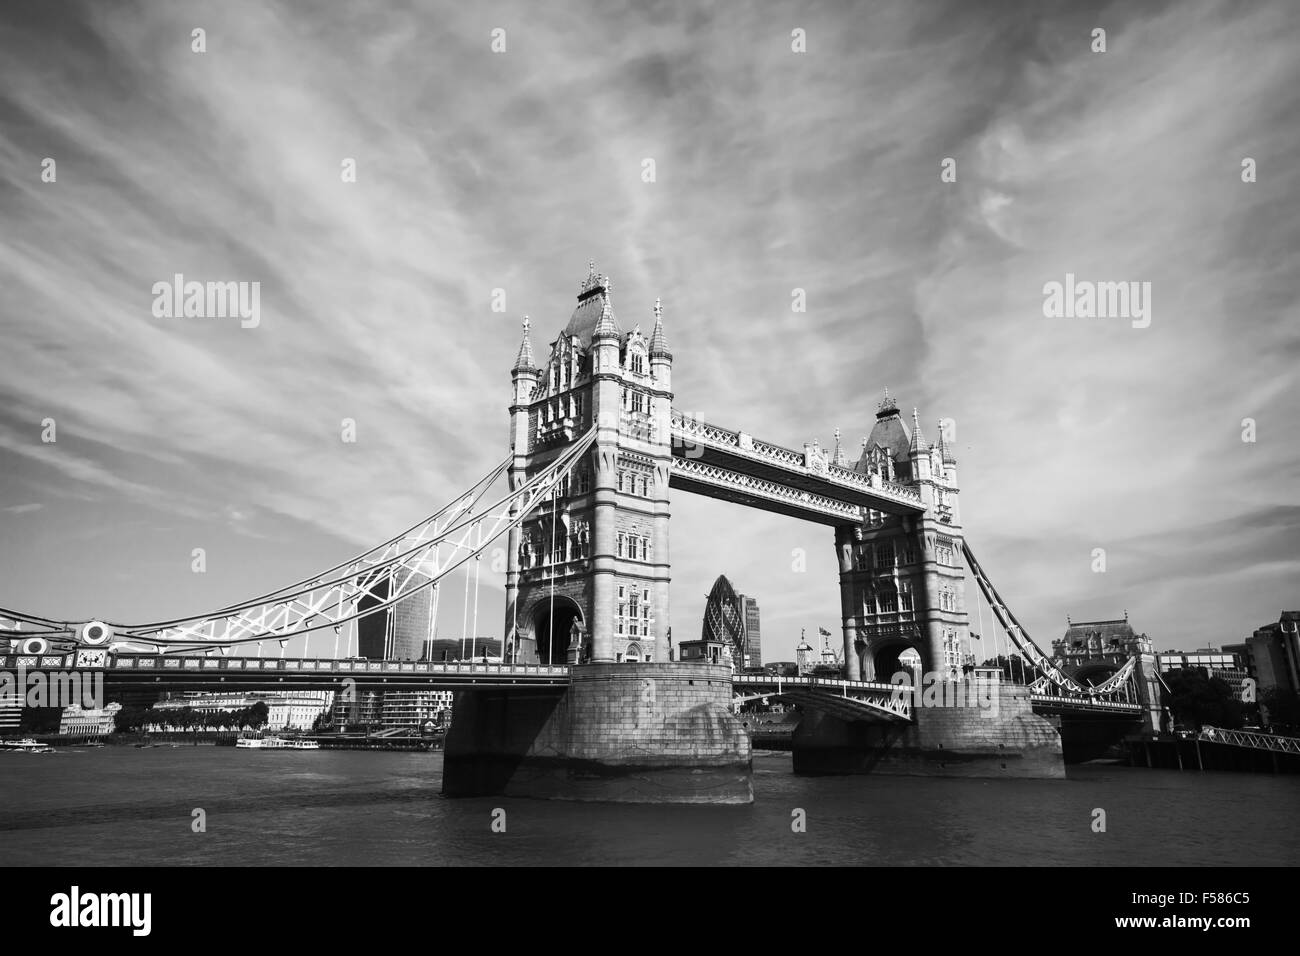 Vista monocroma del Tower Bridge de Londres Imagen De Stock